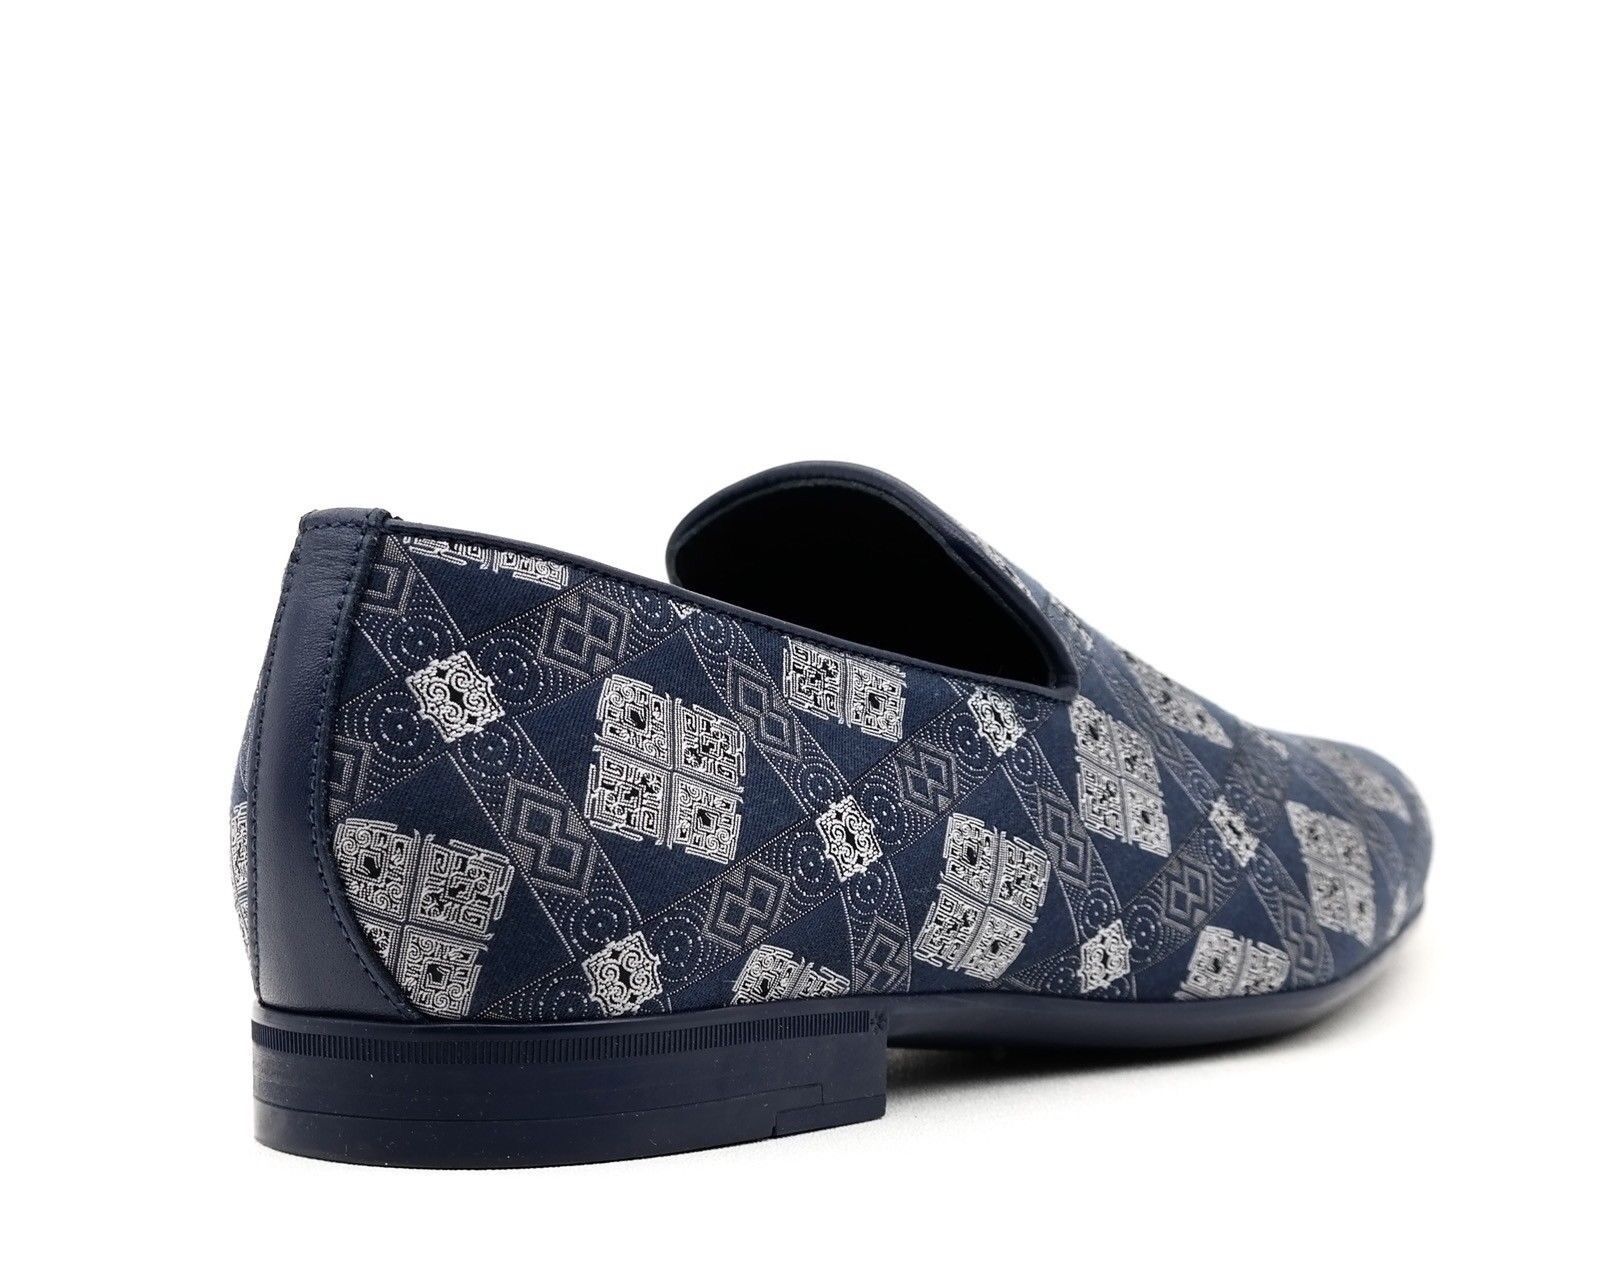 Jimmy Choo Loafers Sloane Blue Fabric Slip On Shoes Size Size Size 11.5 NIB f83664